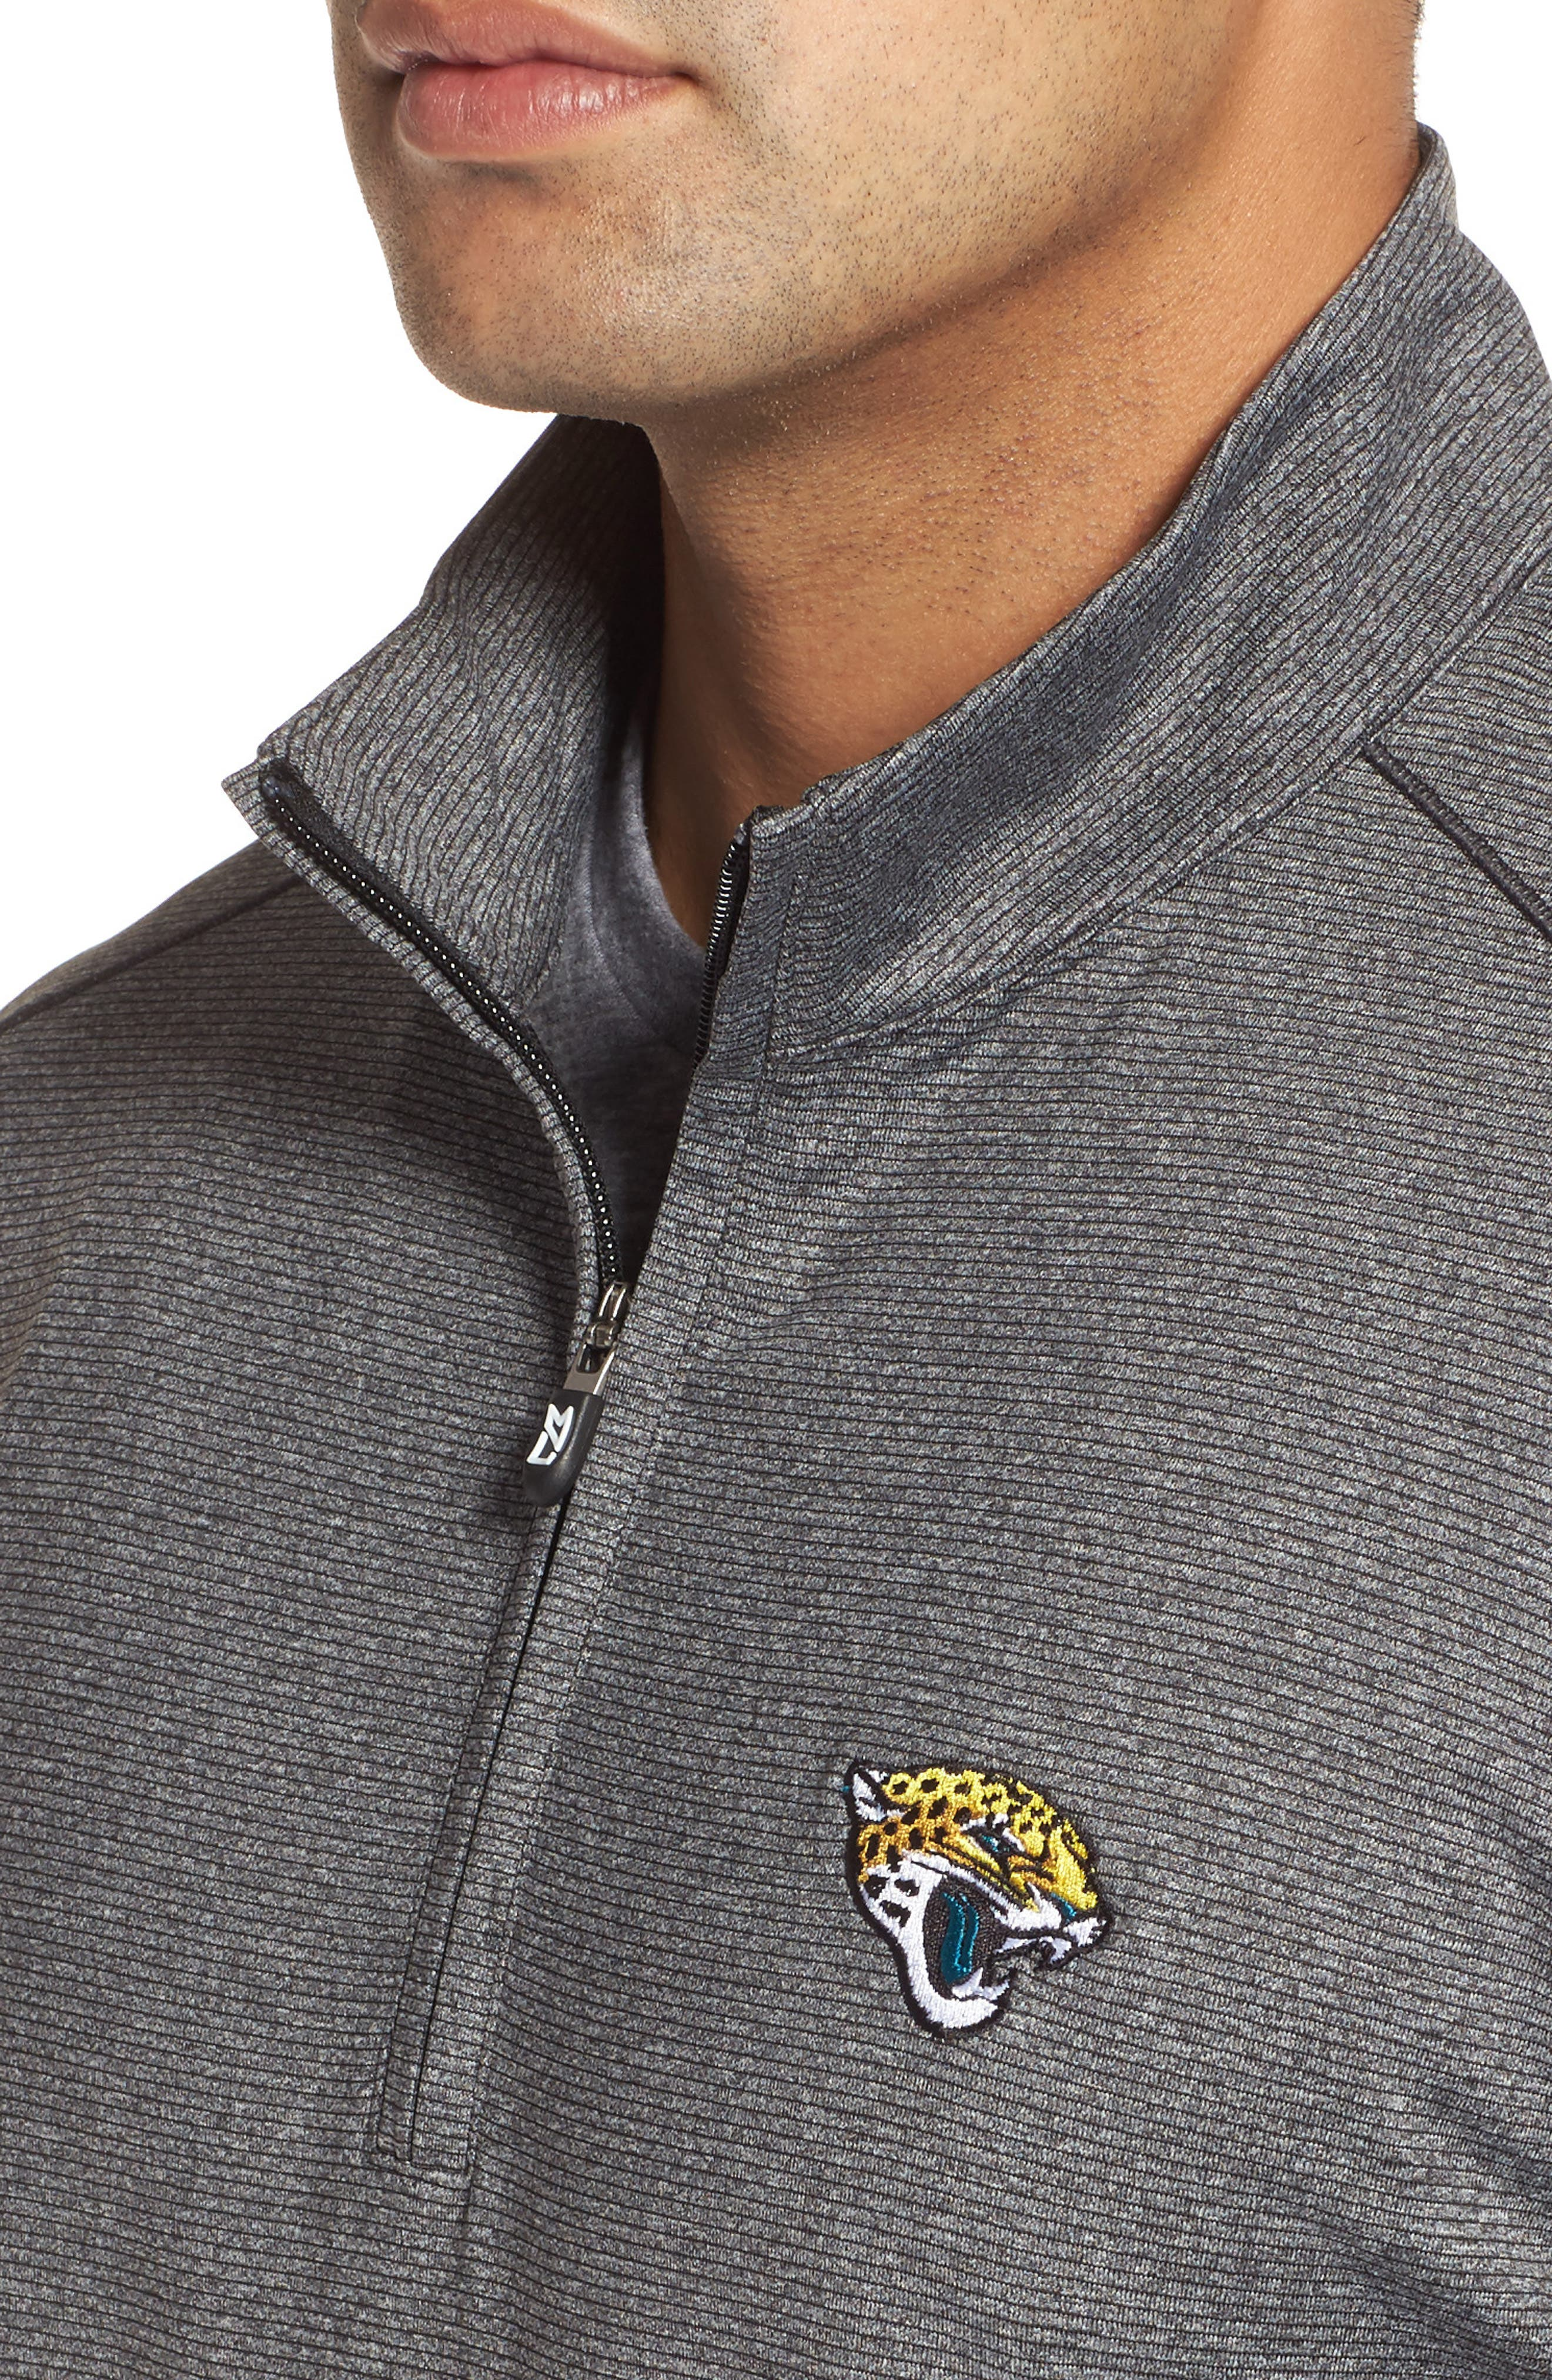 Shoreline - Jacksonville Jaguars Half Zip Pullover,                             Alternate thumbnail 4, color,